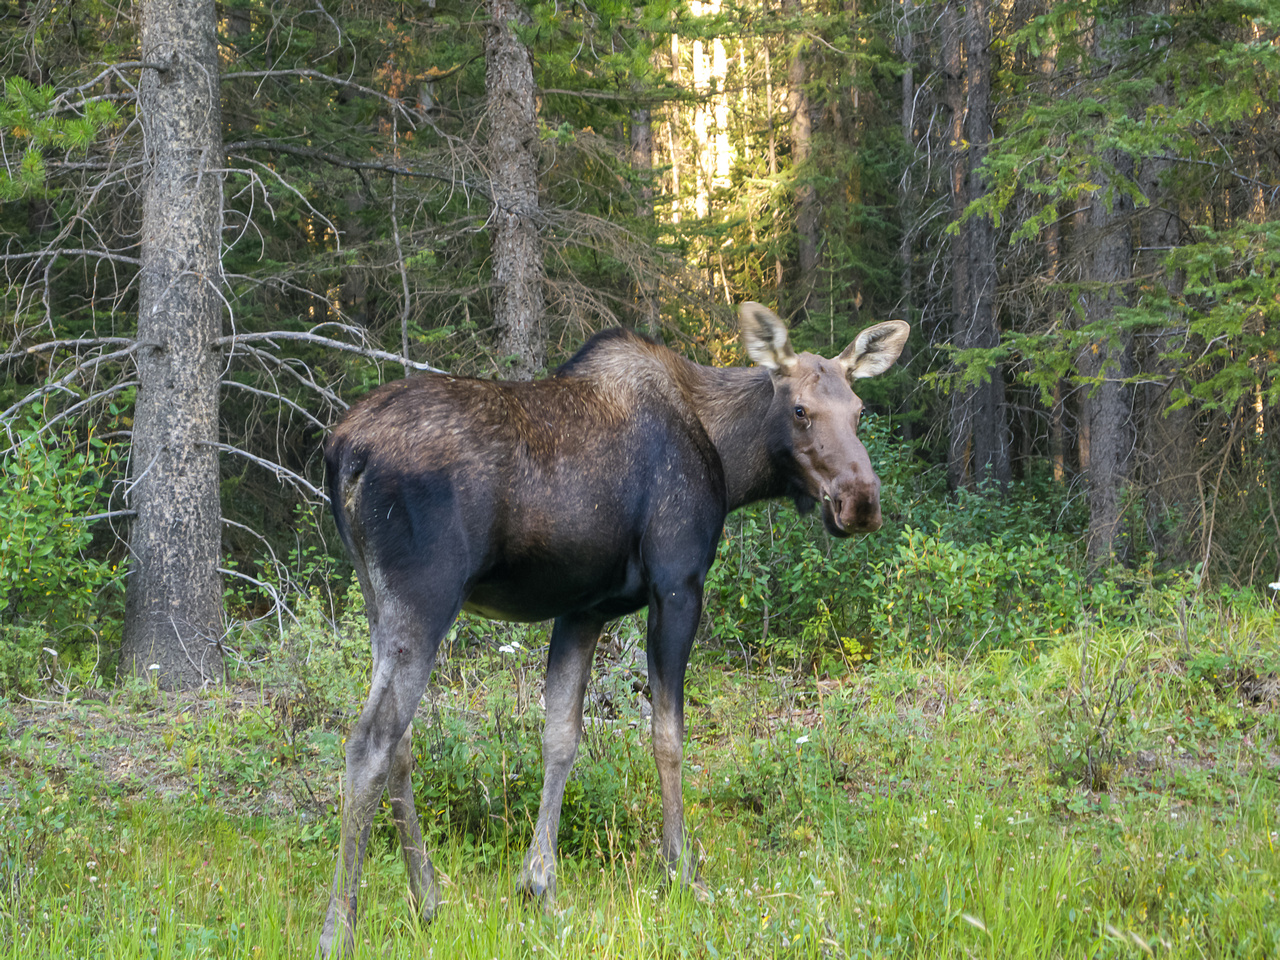 A calf moose on the way out along Fox Creek.